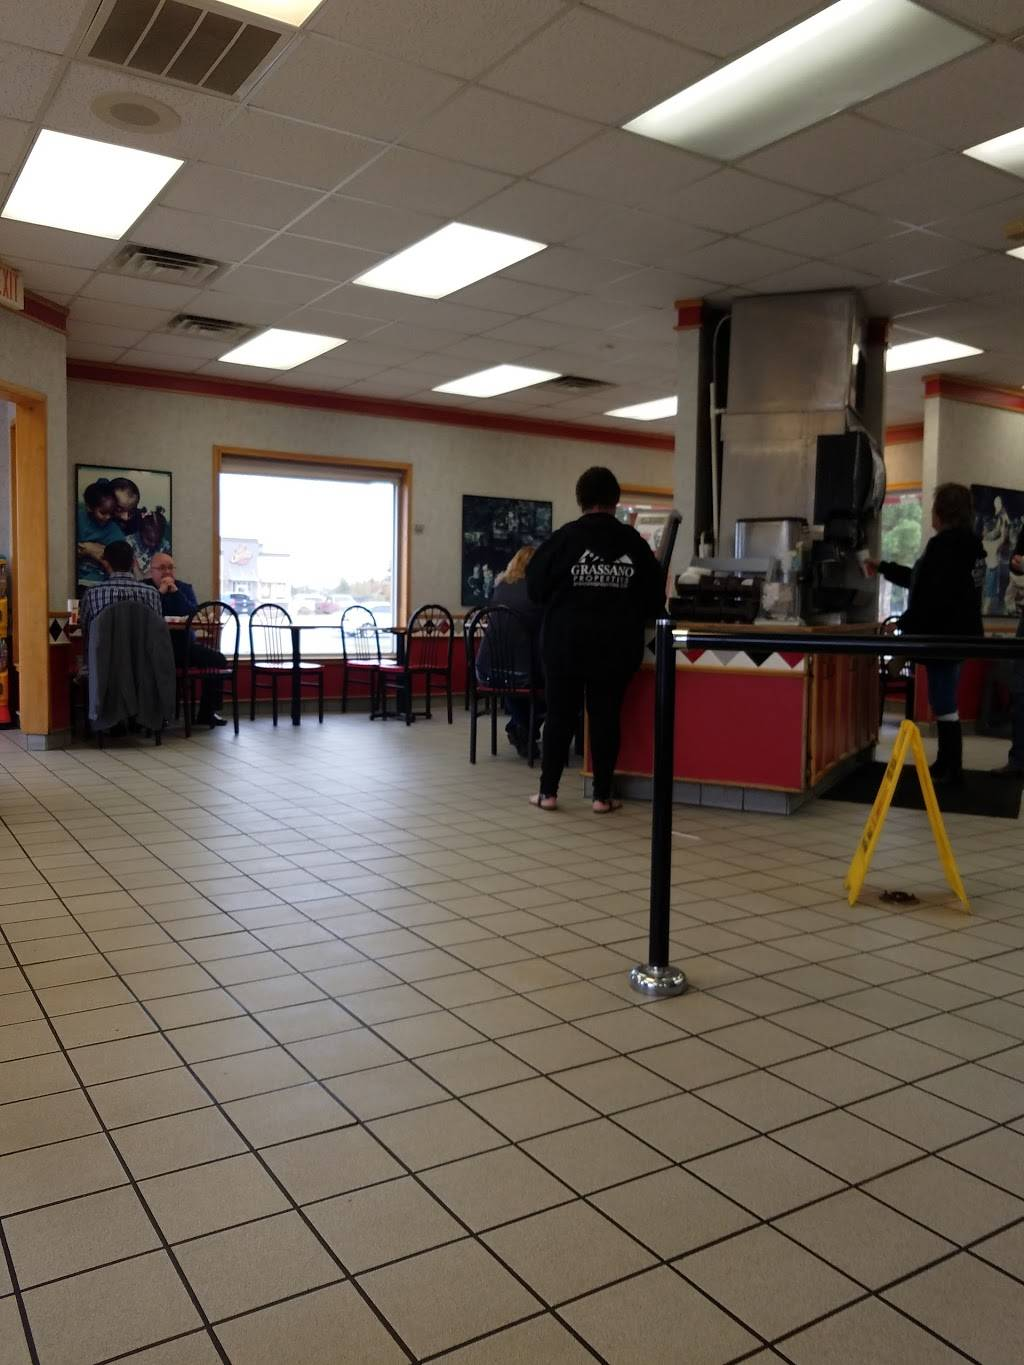 KFC - restaurant  | Photo 10 of 10 | Address: 6411 19th St, Lubbock, TX 79407, USA | Phone: (806) 785-0400